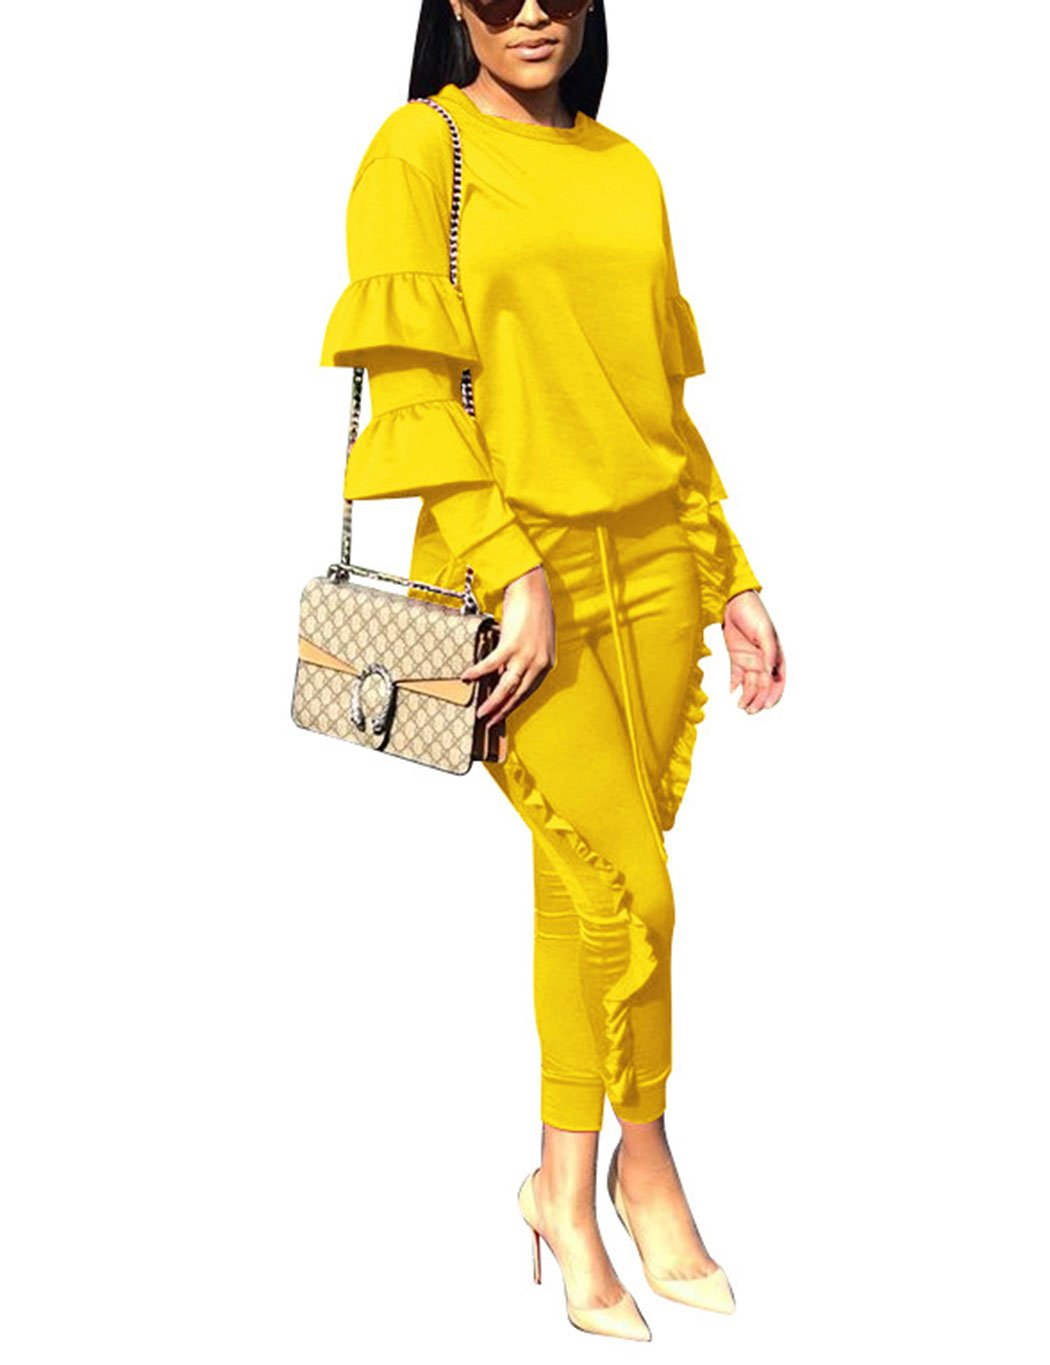 Women 2 Pieces Outfits Puff Sleeve Top and Long Flounced Pants Sweatsuits Set Tracksuits Yellow Medium